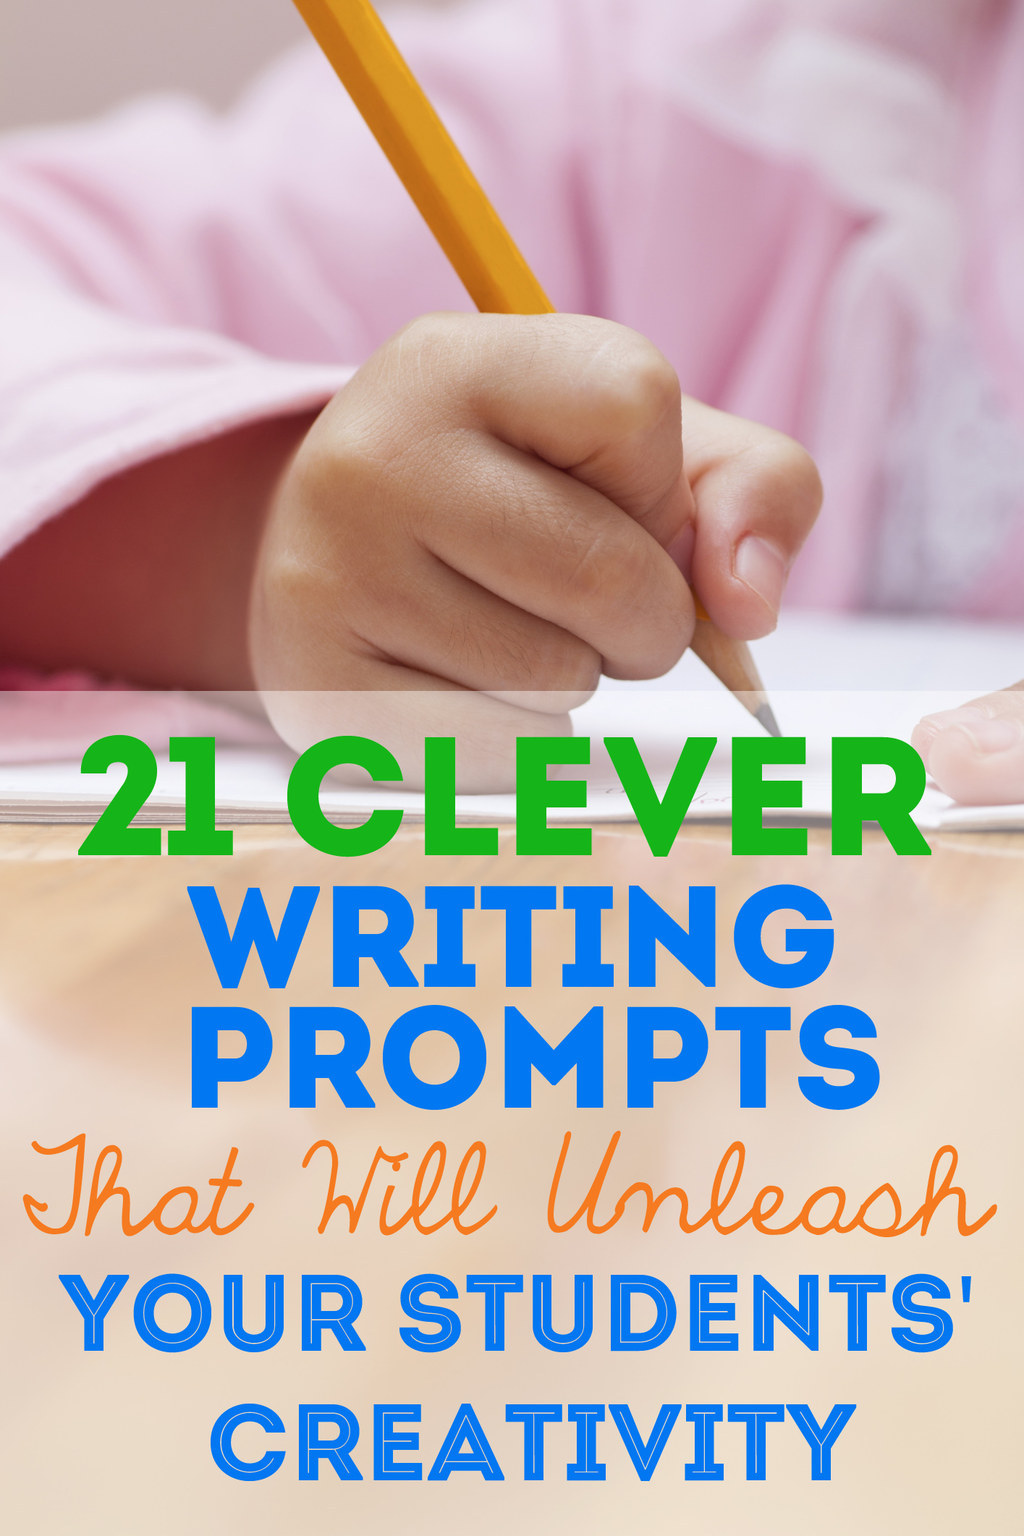 21 Clever Writing Prompts That Will Unleash Your Students